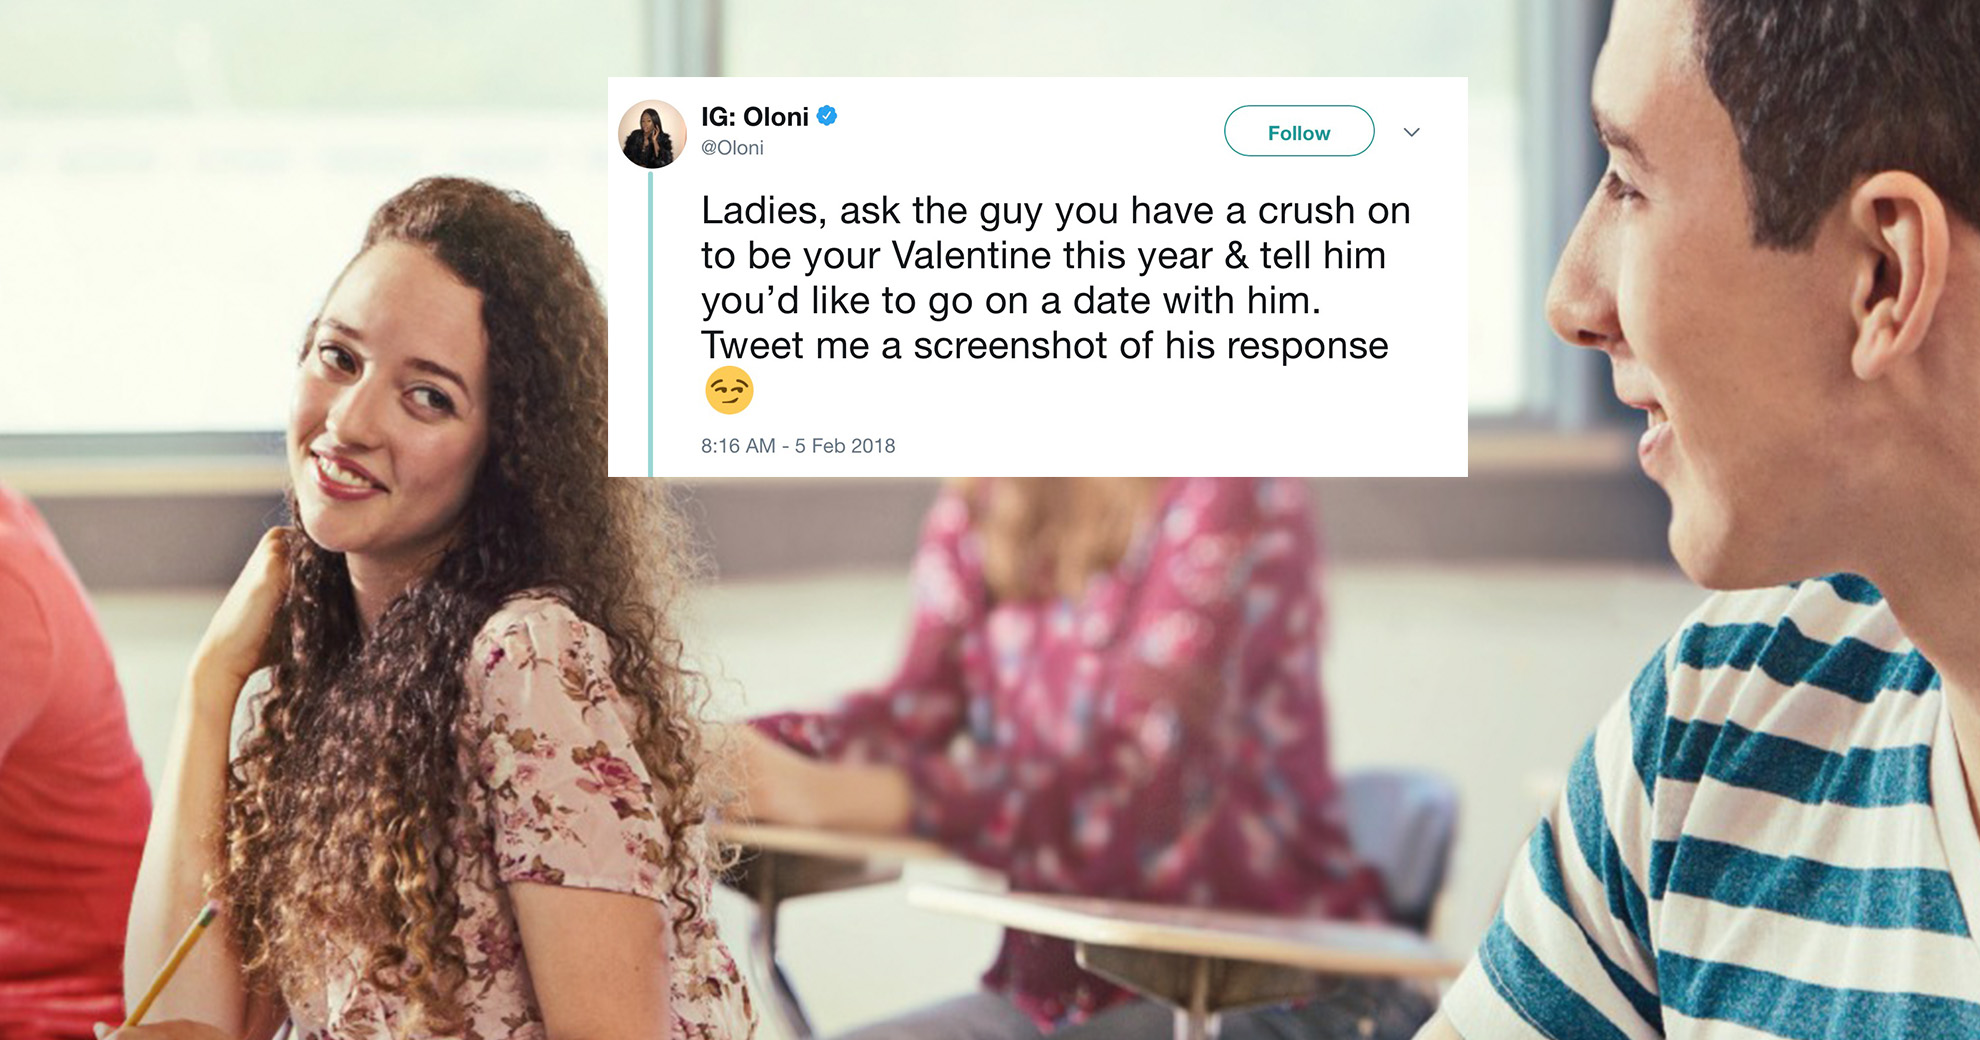 After A Blogger Issued A Challenge, Women Share The Results Of Asking Their Crushes Out